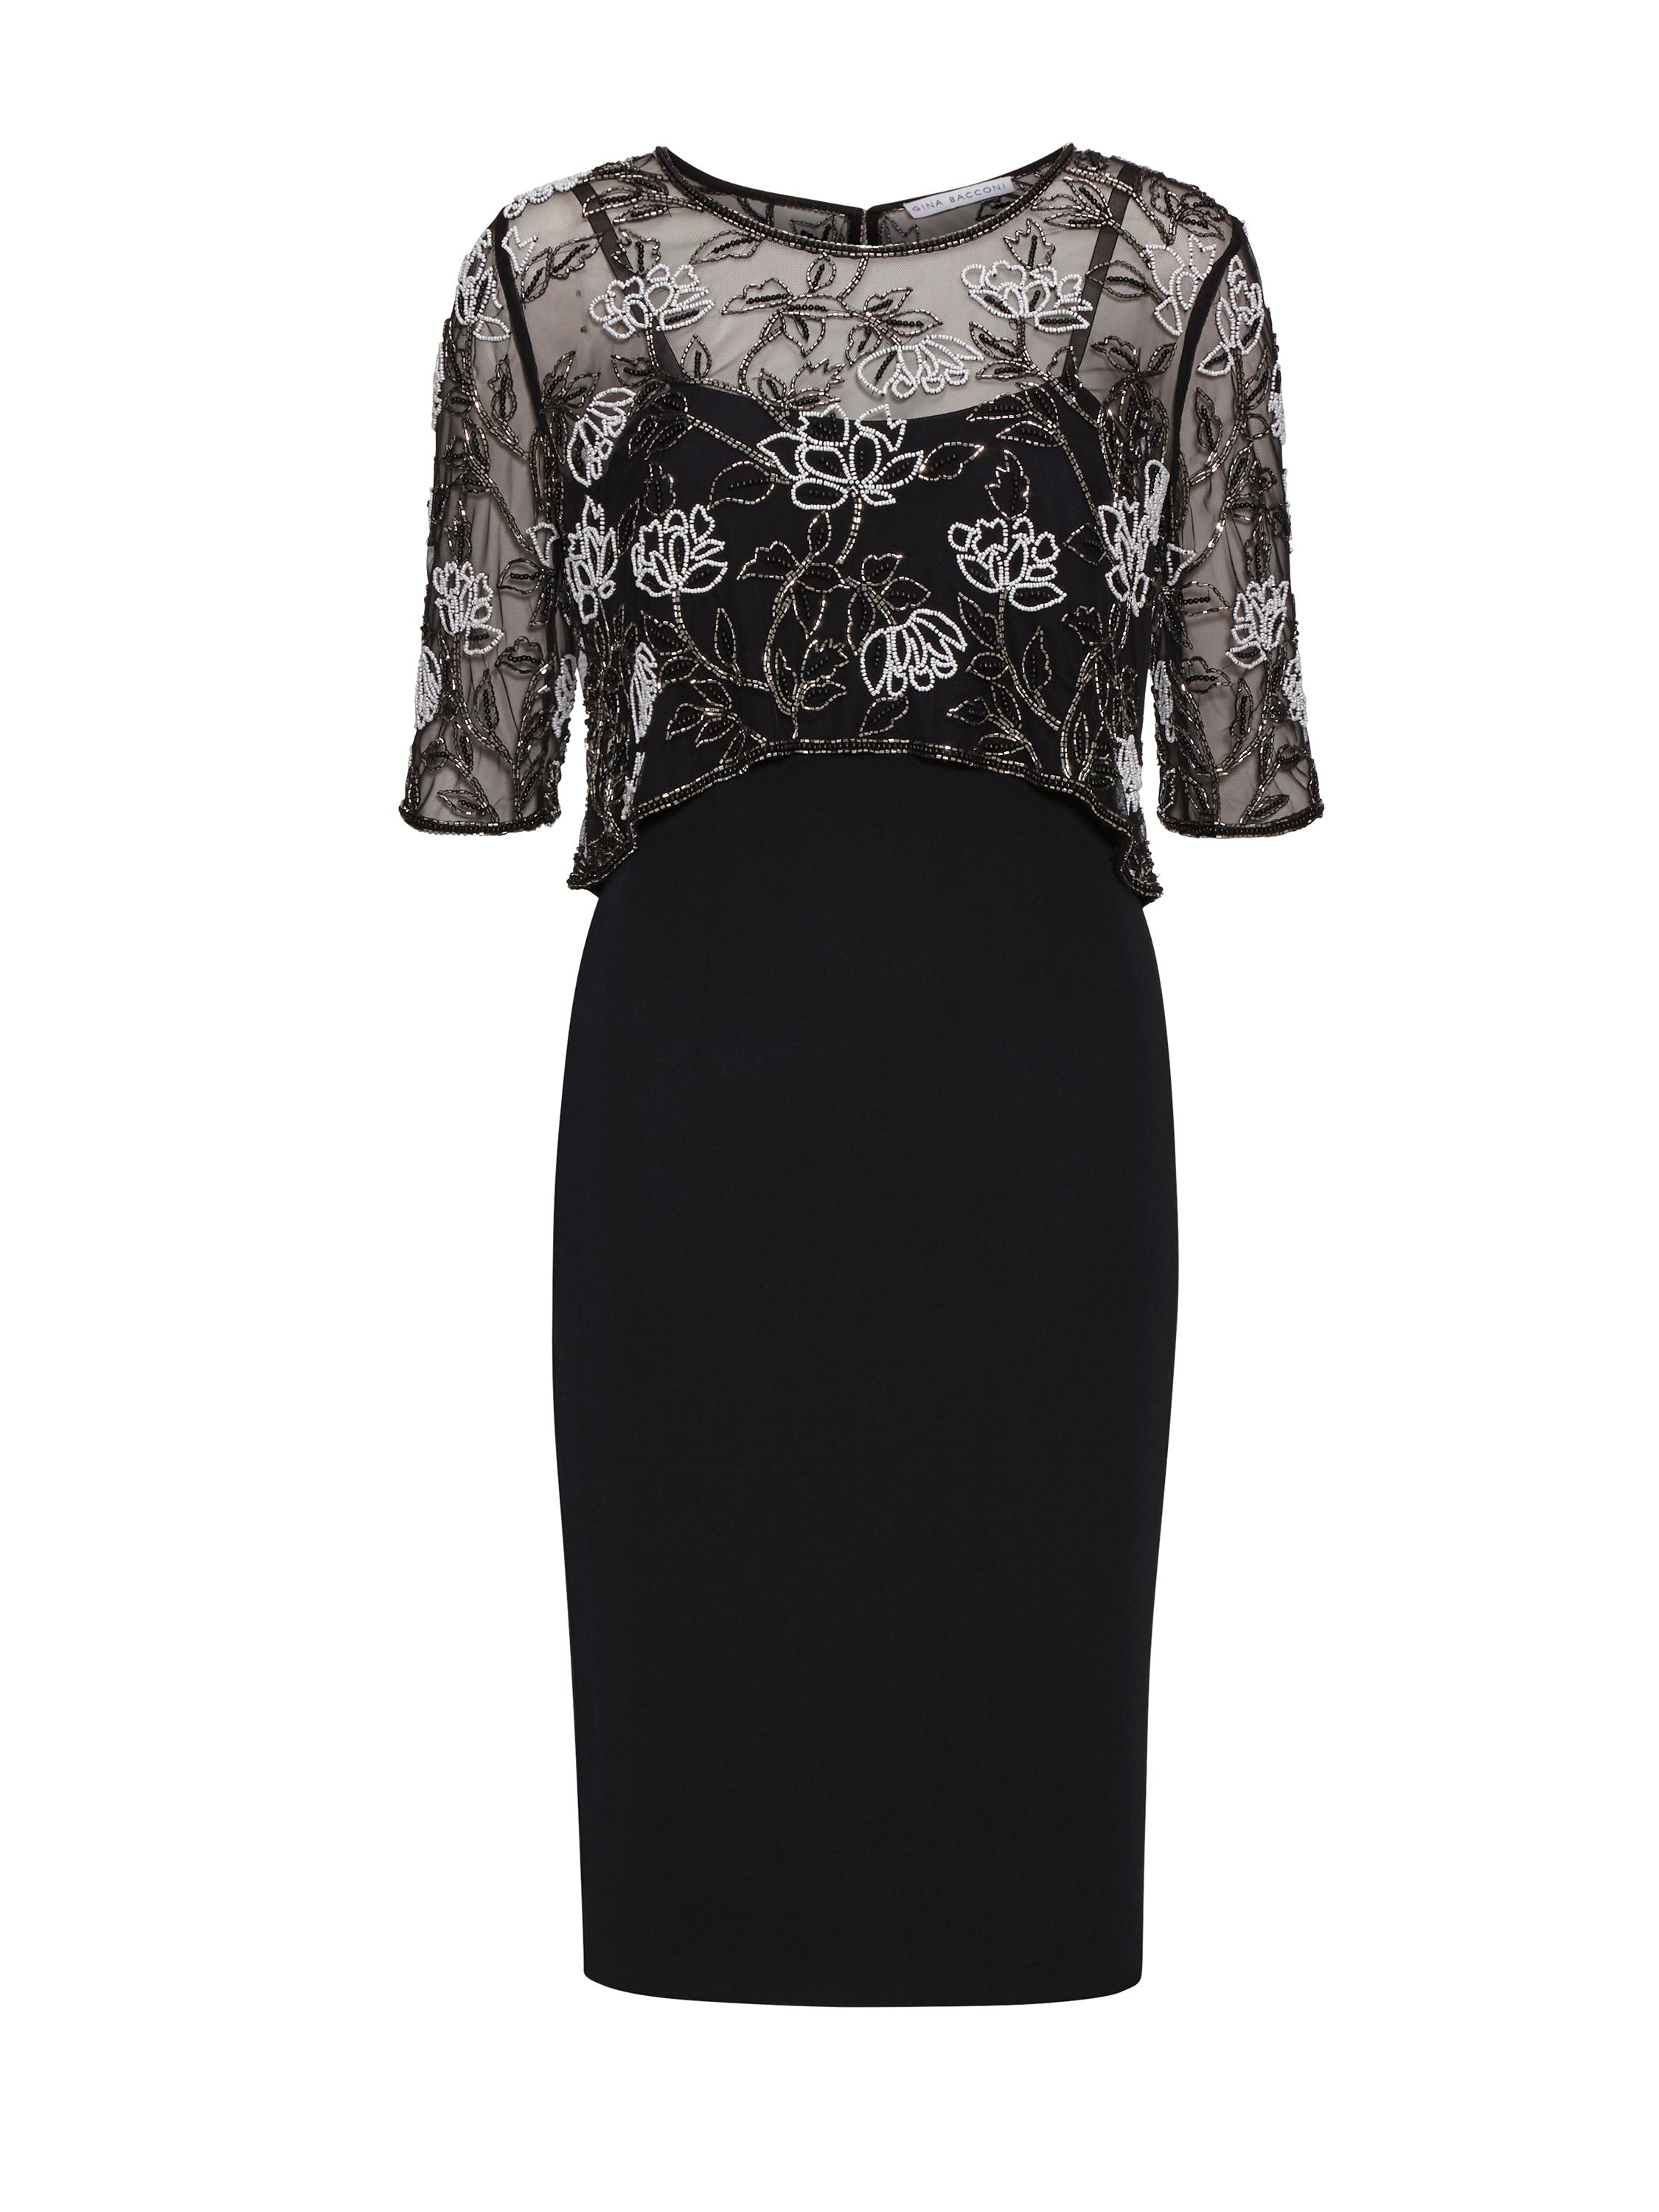 Gina Bacconi Moss Crepe Dress With Beaded Over Top, Black